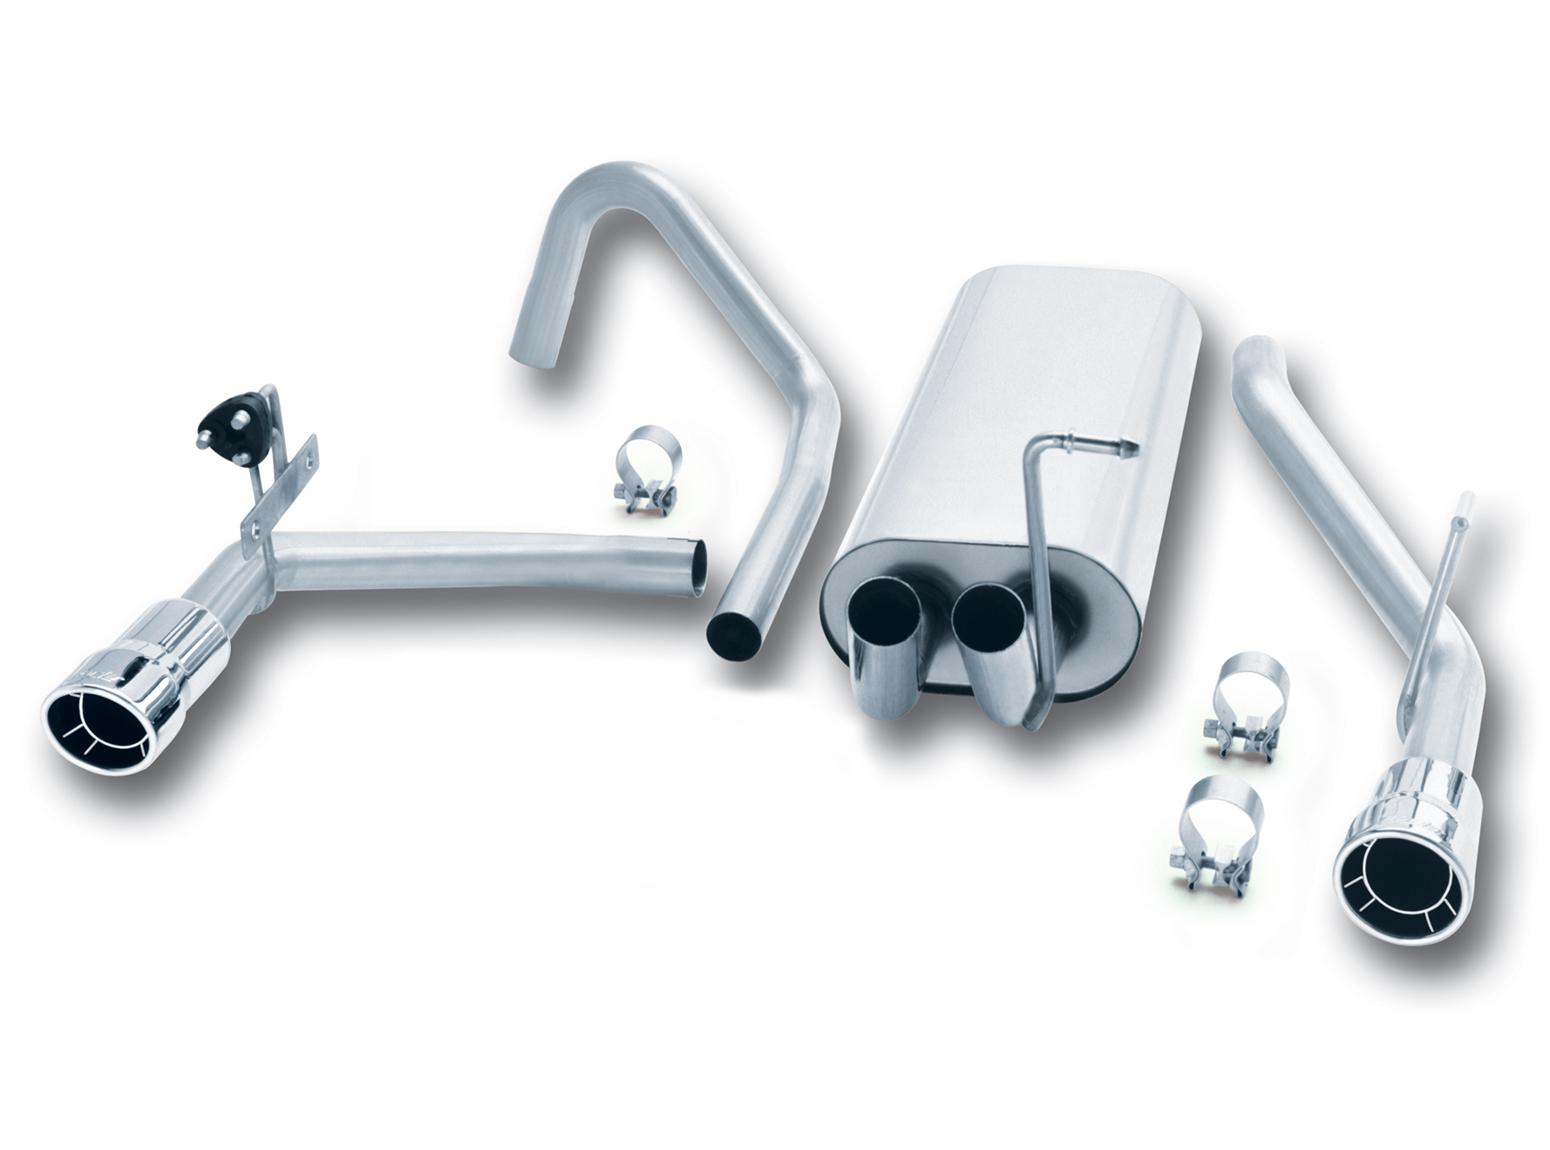 "Jeep Liberty 3.7l V6 2002-2005 Borla 3"", 2"" Cat-Back Exhaust System - Single Round Rolled Angle-Cut Intercooled Tips"